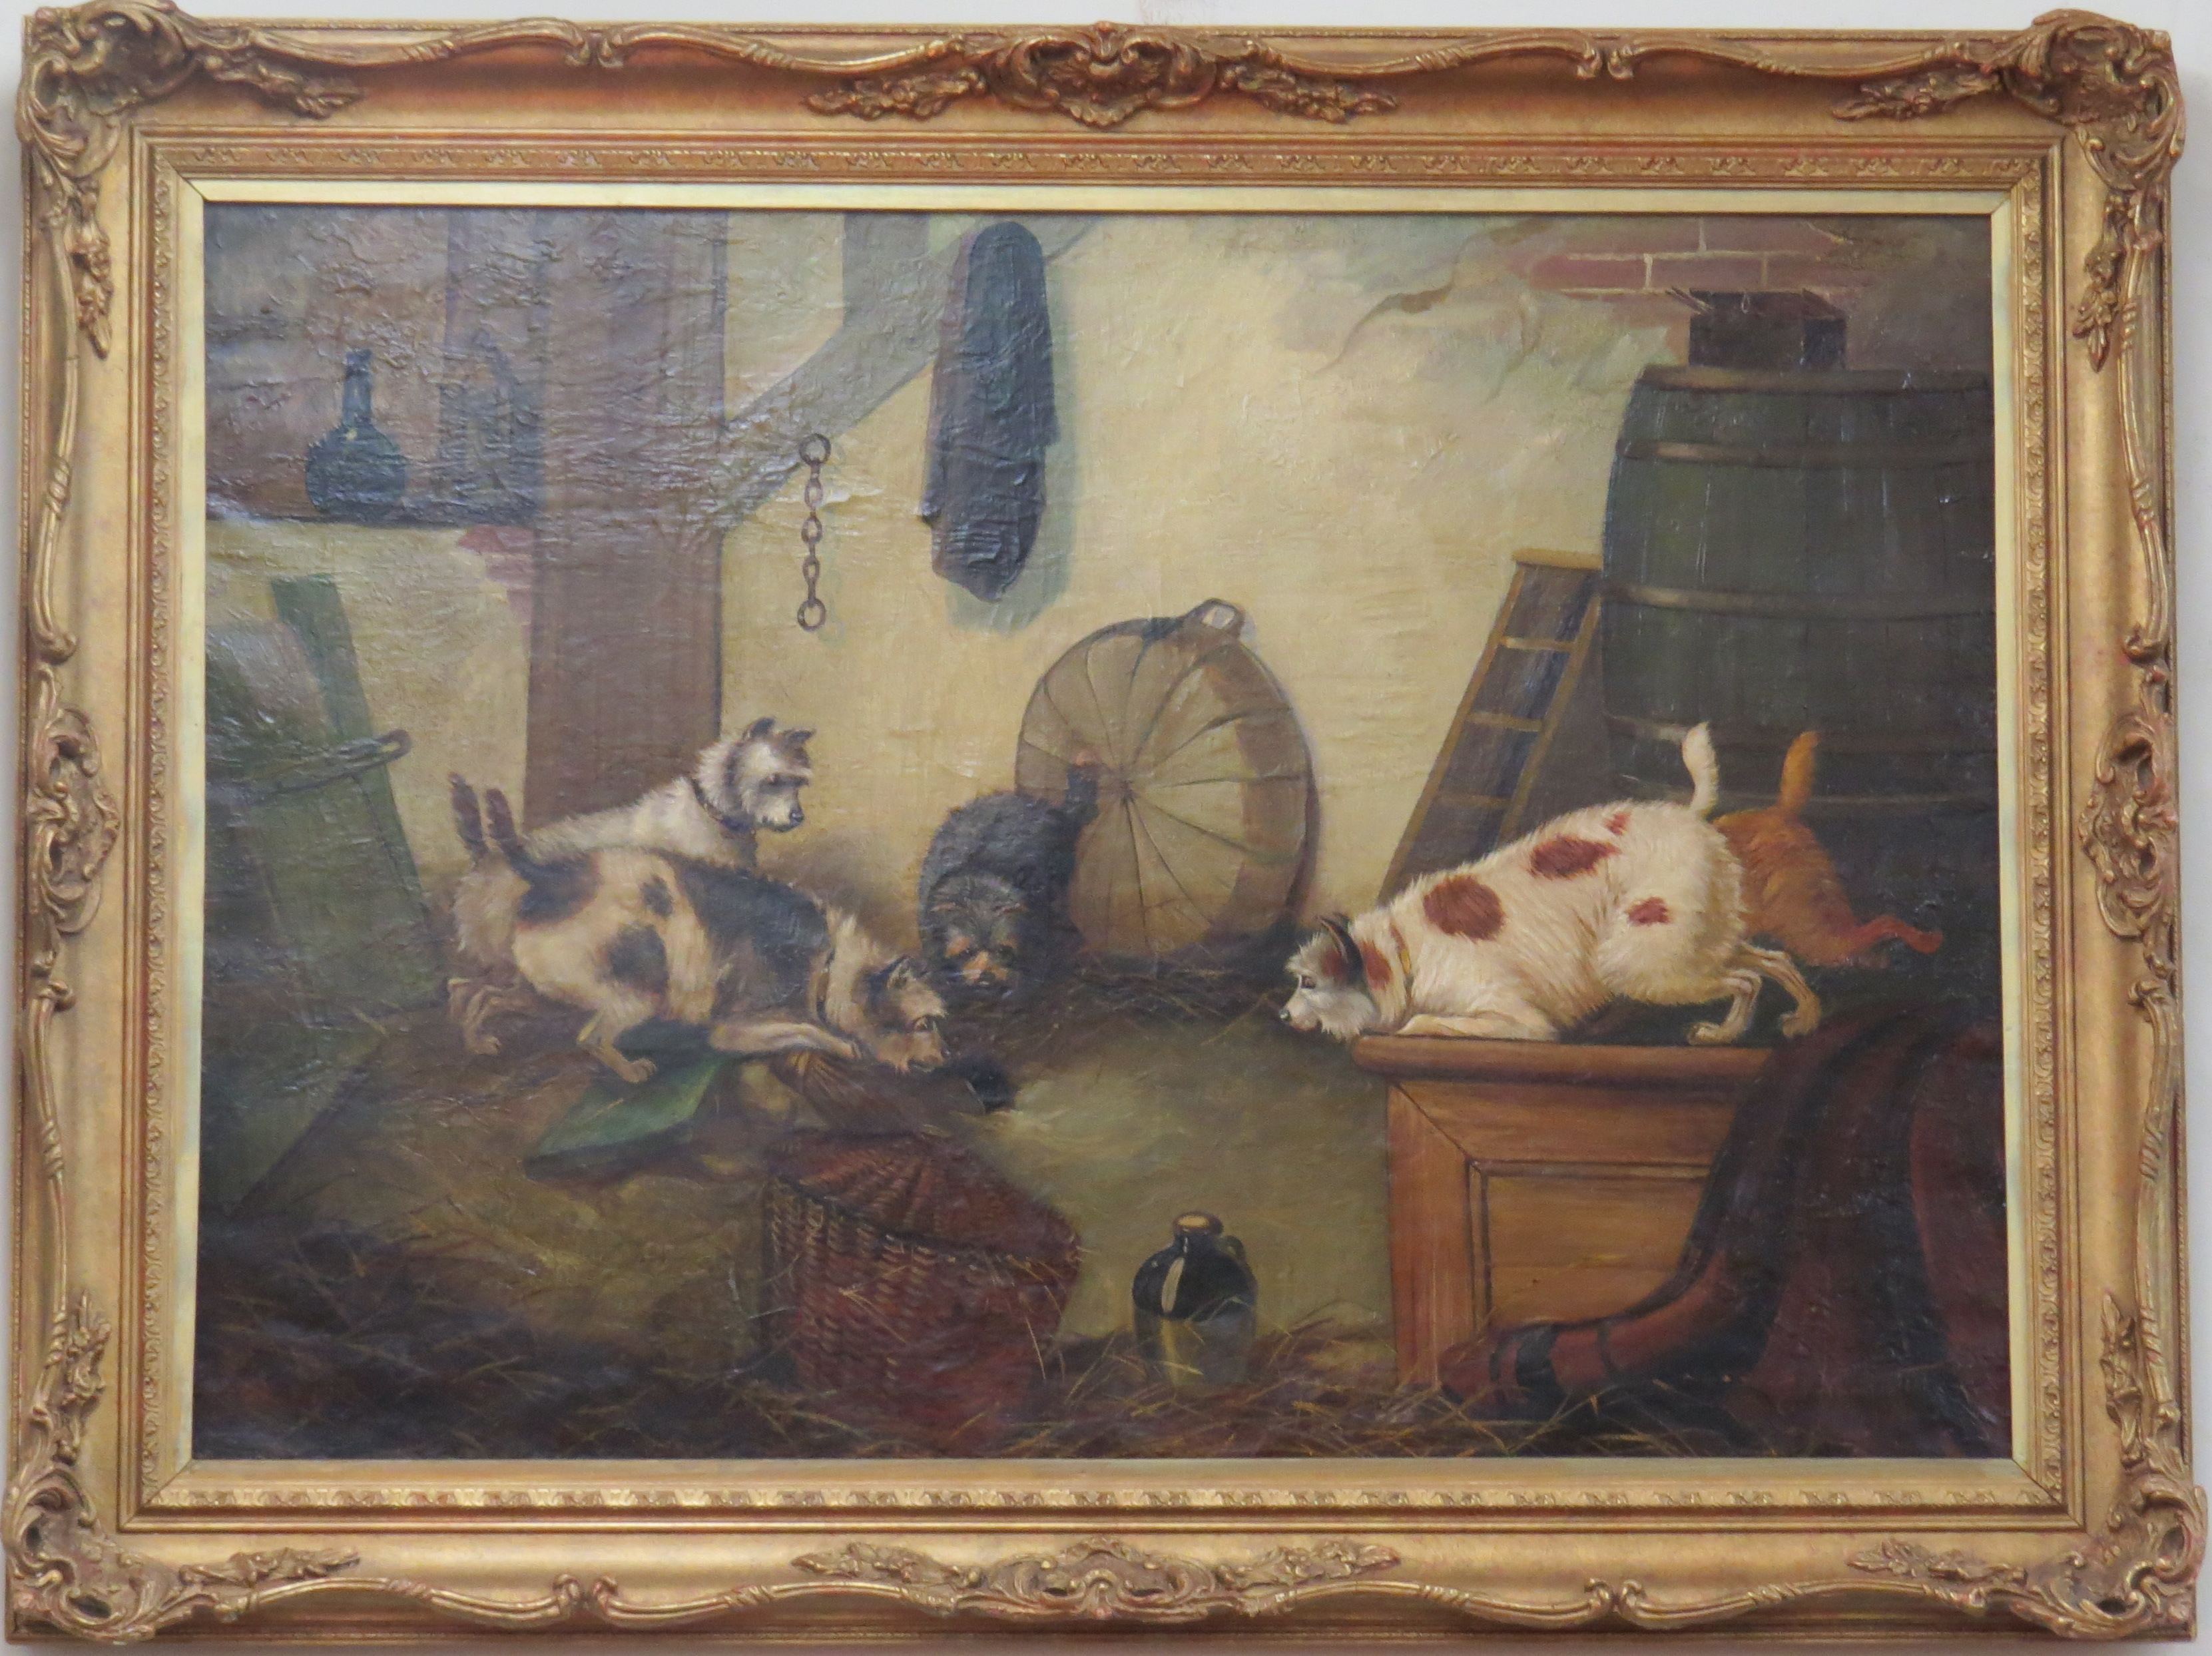 Oil on Canvas of Terriers by Edward Armfield